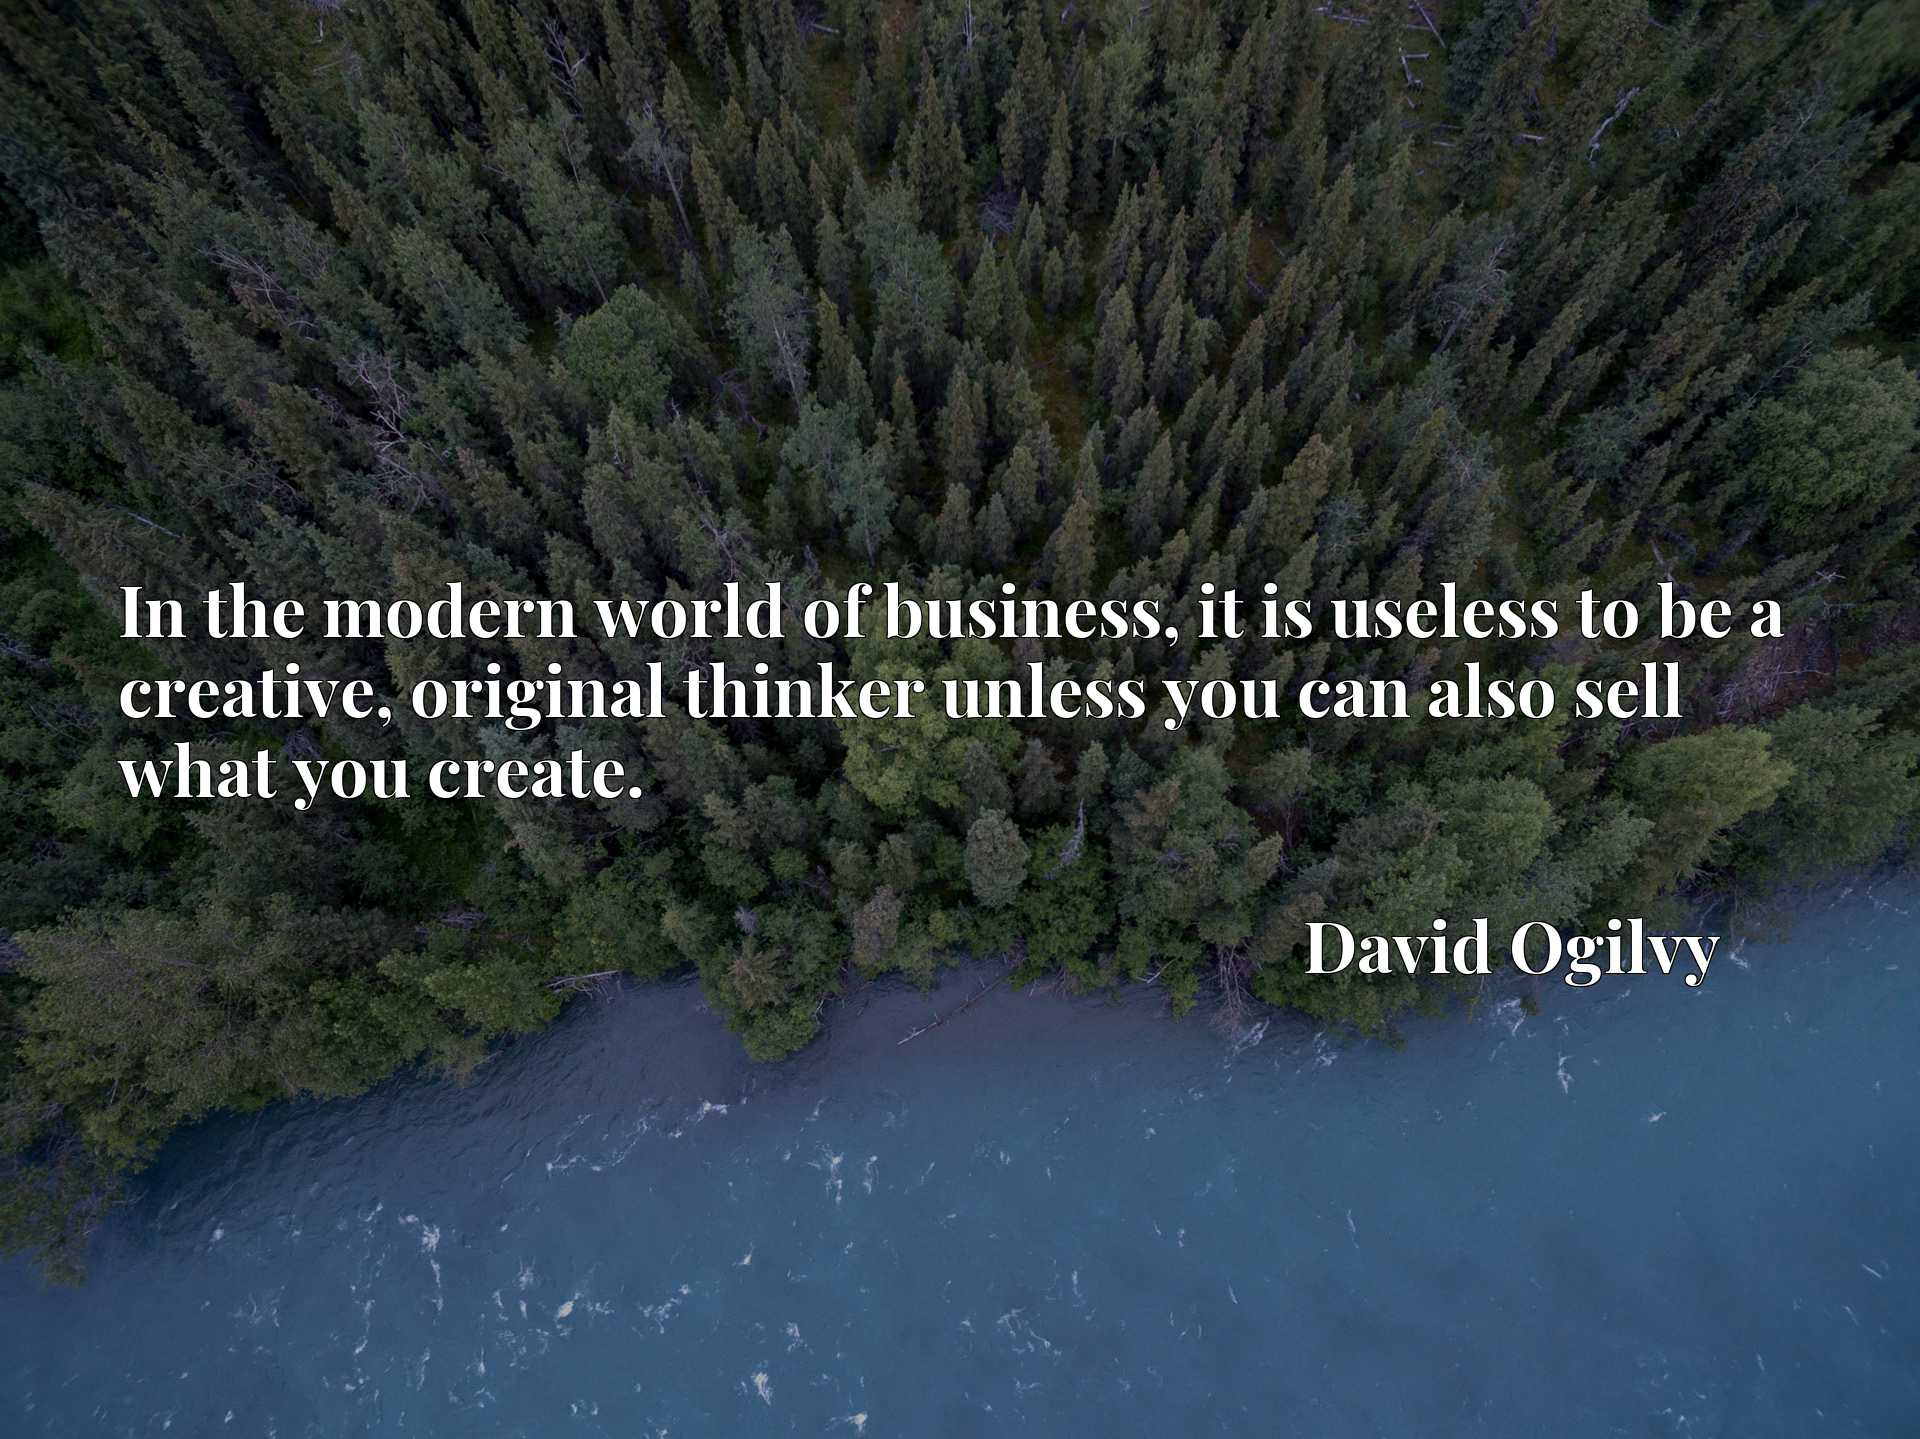 Quote Picture :In the modern world of business, it is useless to be a creative, original thinker unless you can also sell what you create.